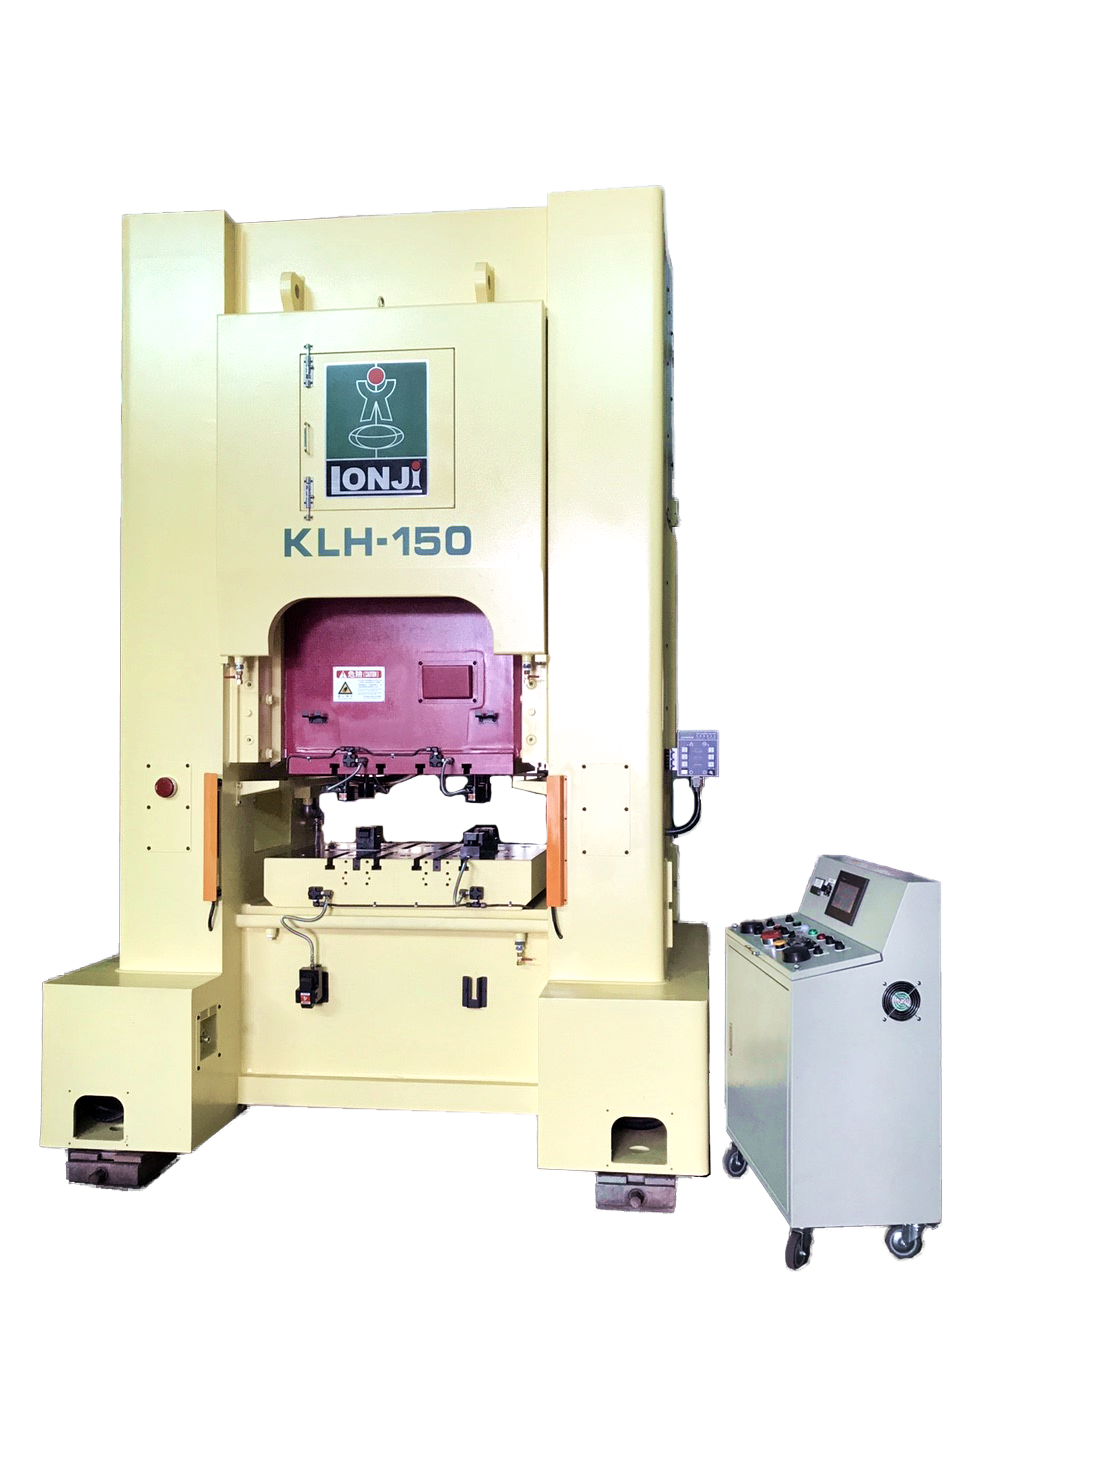 Cold Forging High Speed Knuckle Joint Press - KLH Series